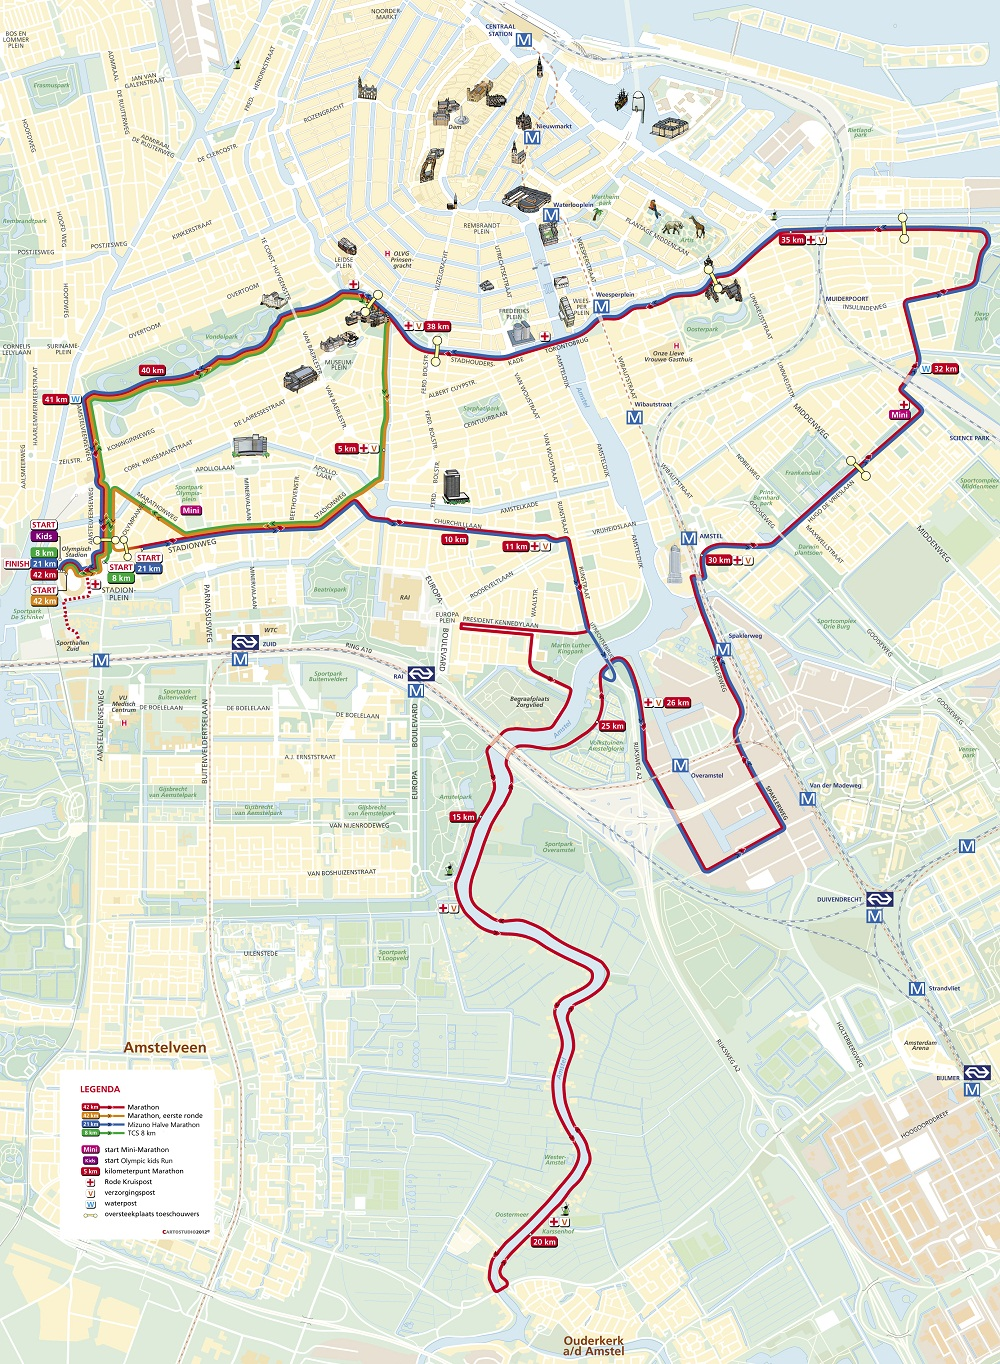 Wonderbaarlijk Amsterdam marathon information and tips FS-06